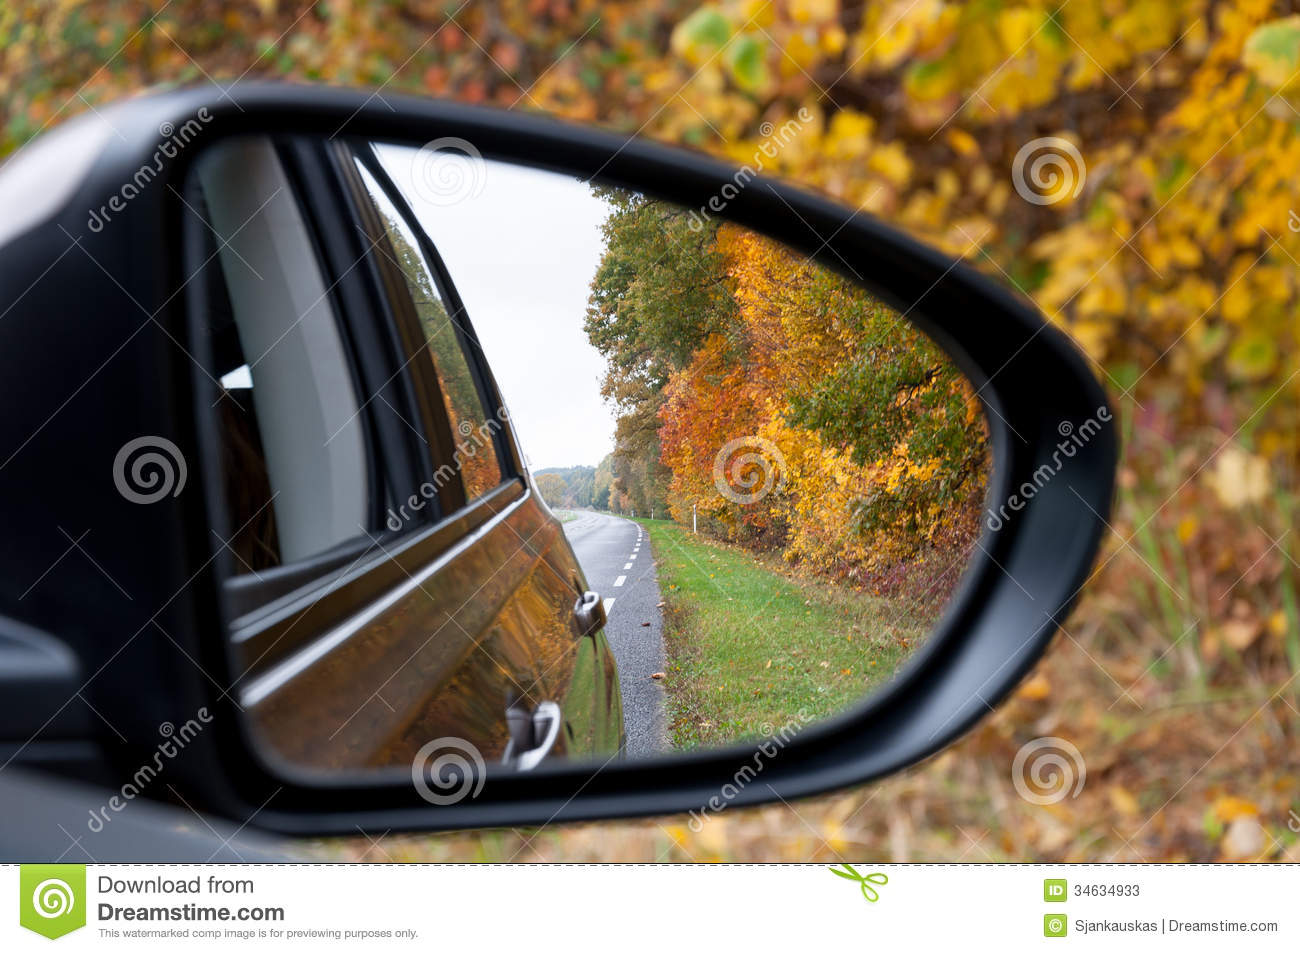 Car Mirror Autumn Road Reflection Stock Image - Image of